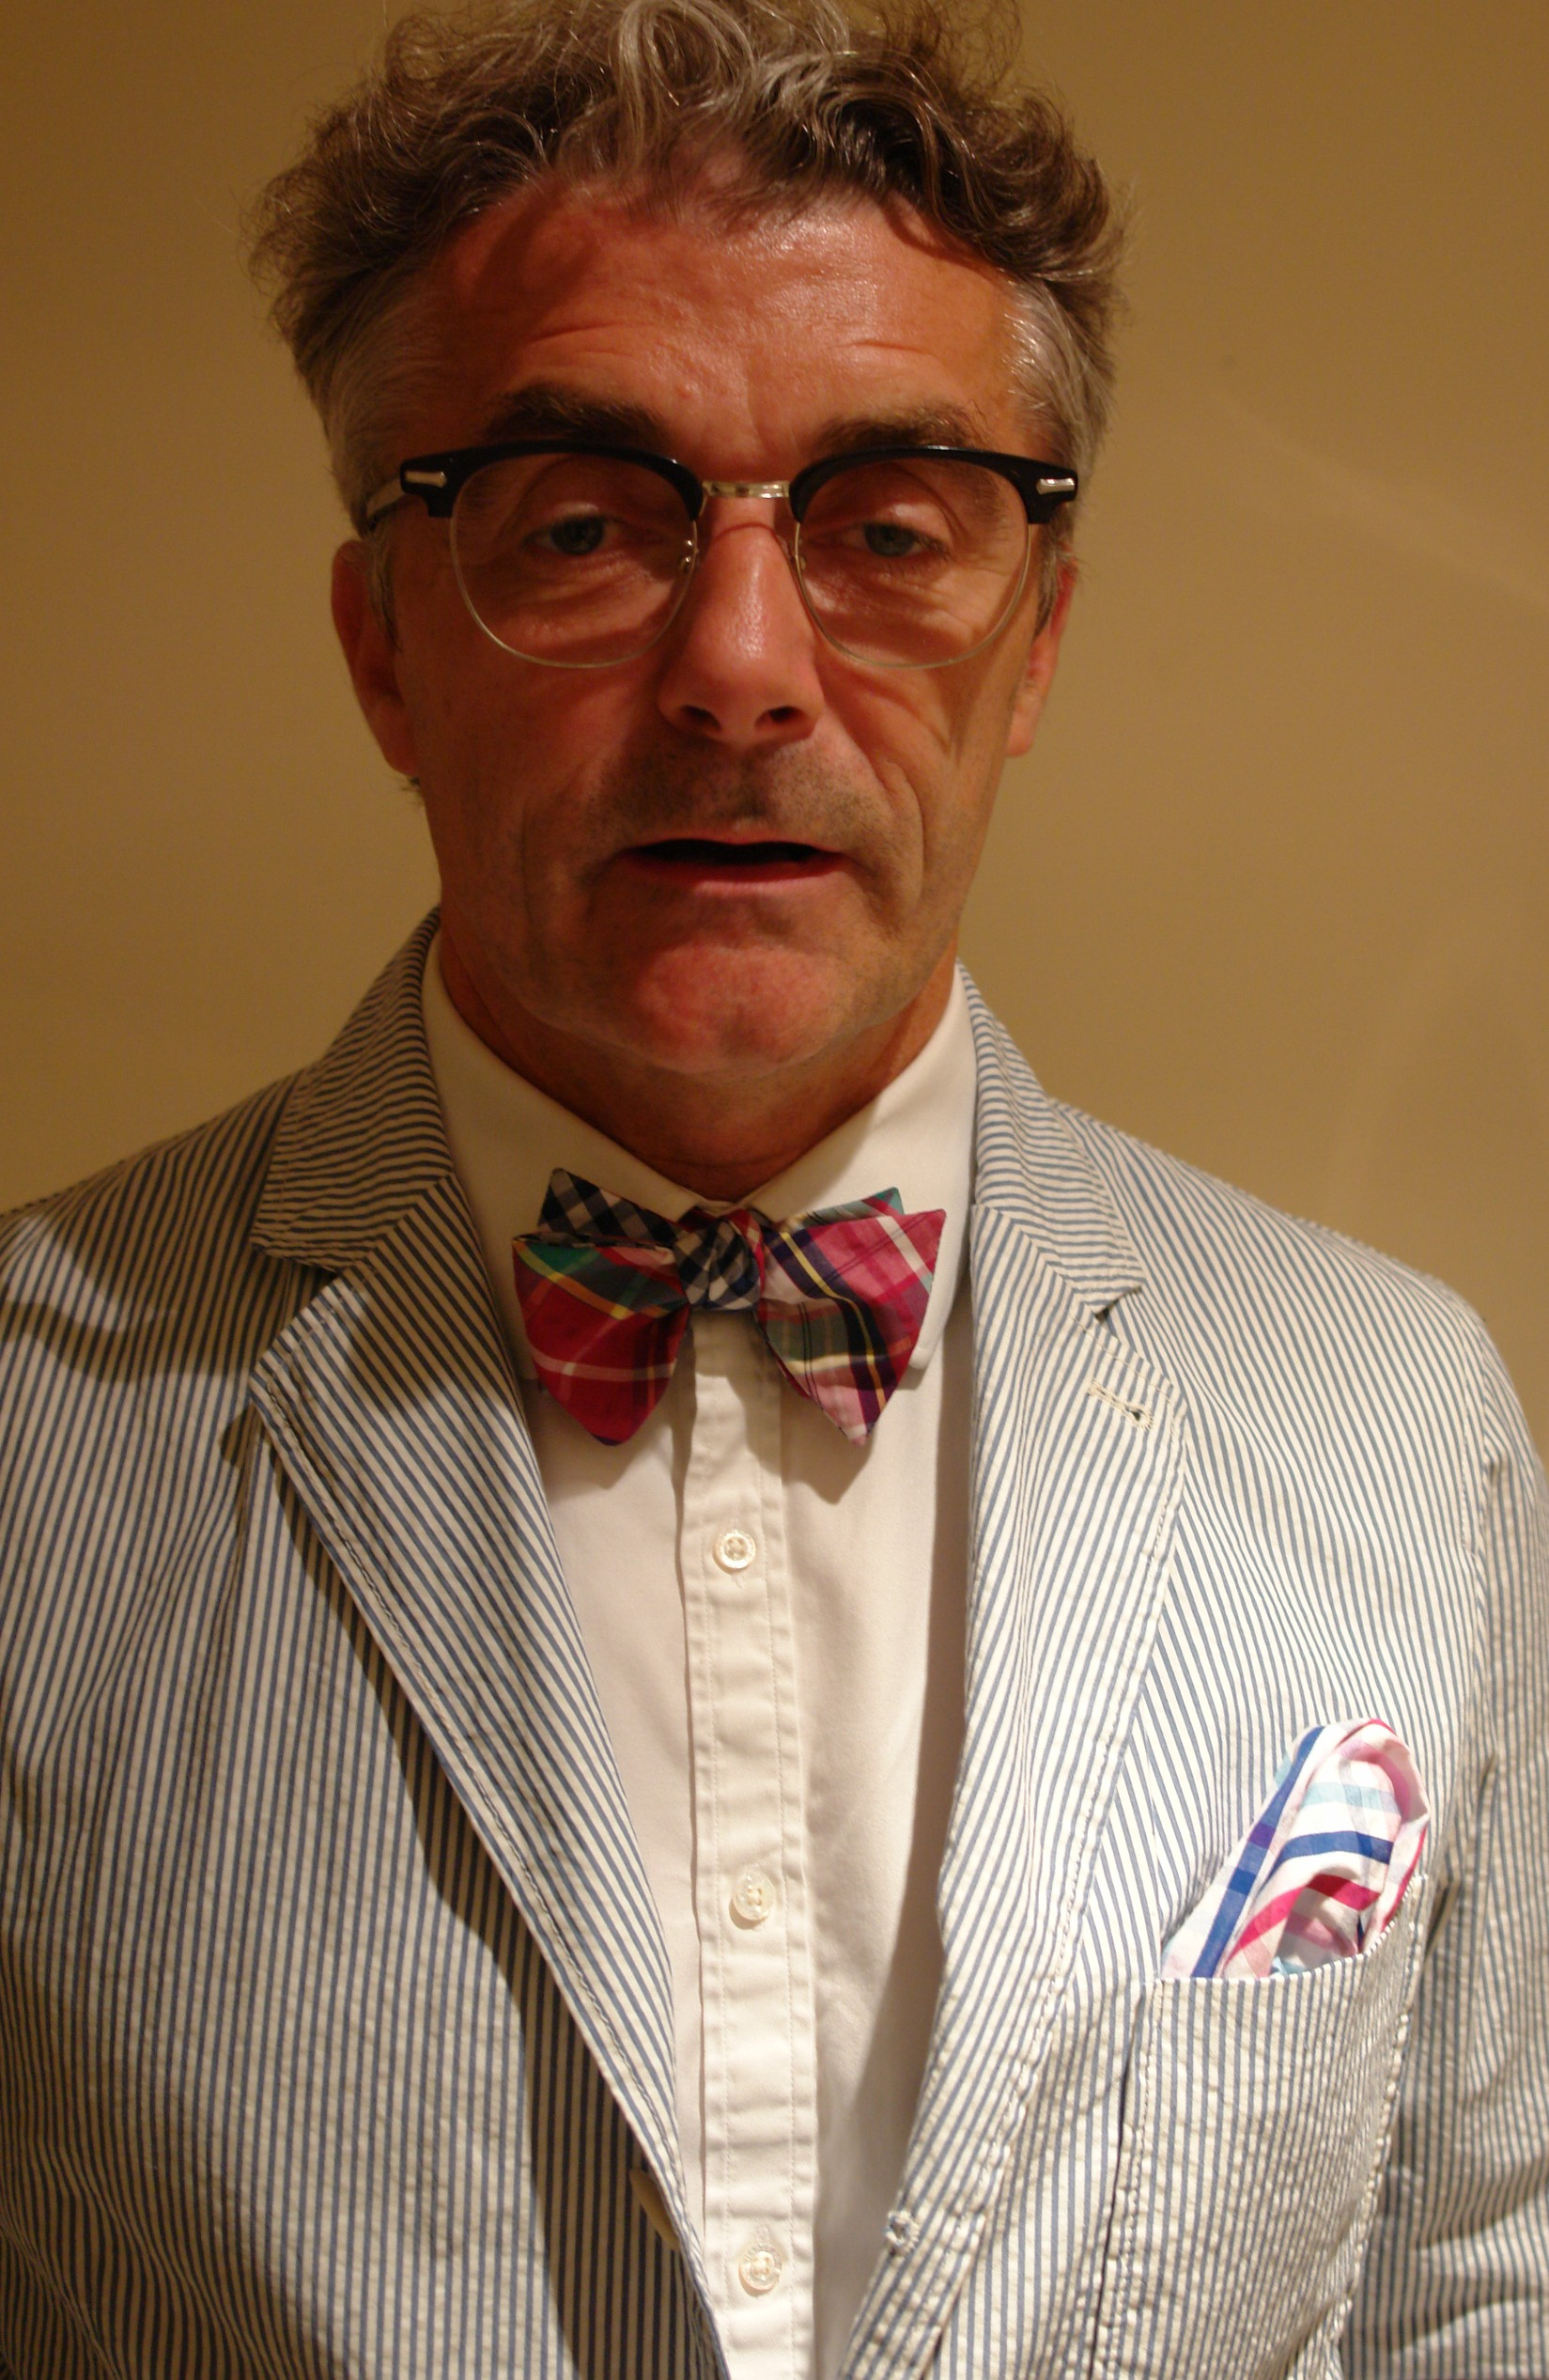 f9eaae7d85f2 Brooks Brothers bow tie - Eric Musgrave